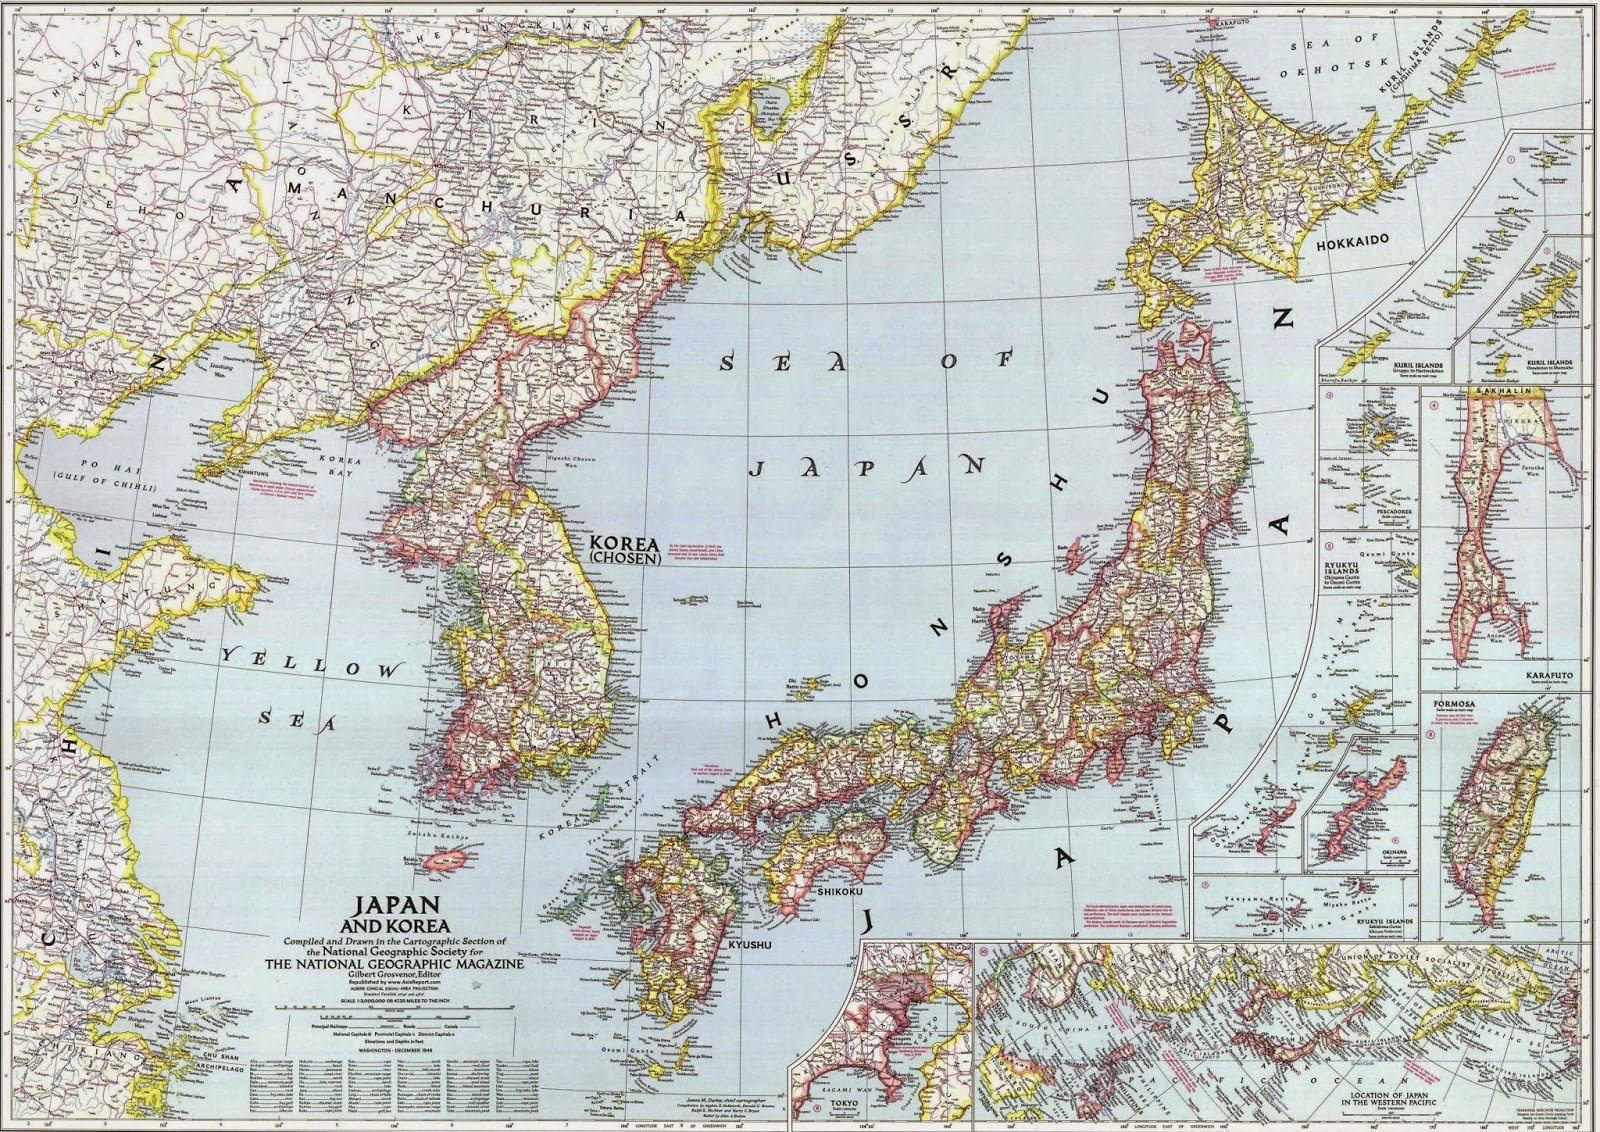 Japan S Climate Change Temperature Controls In The City